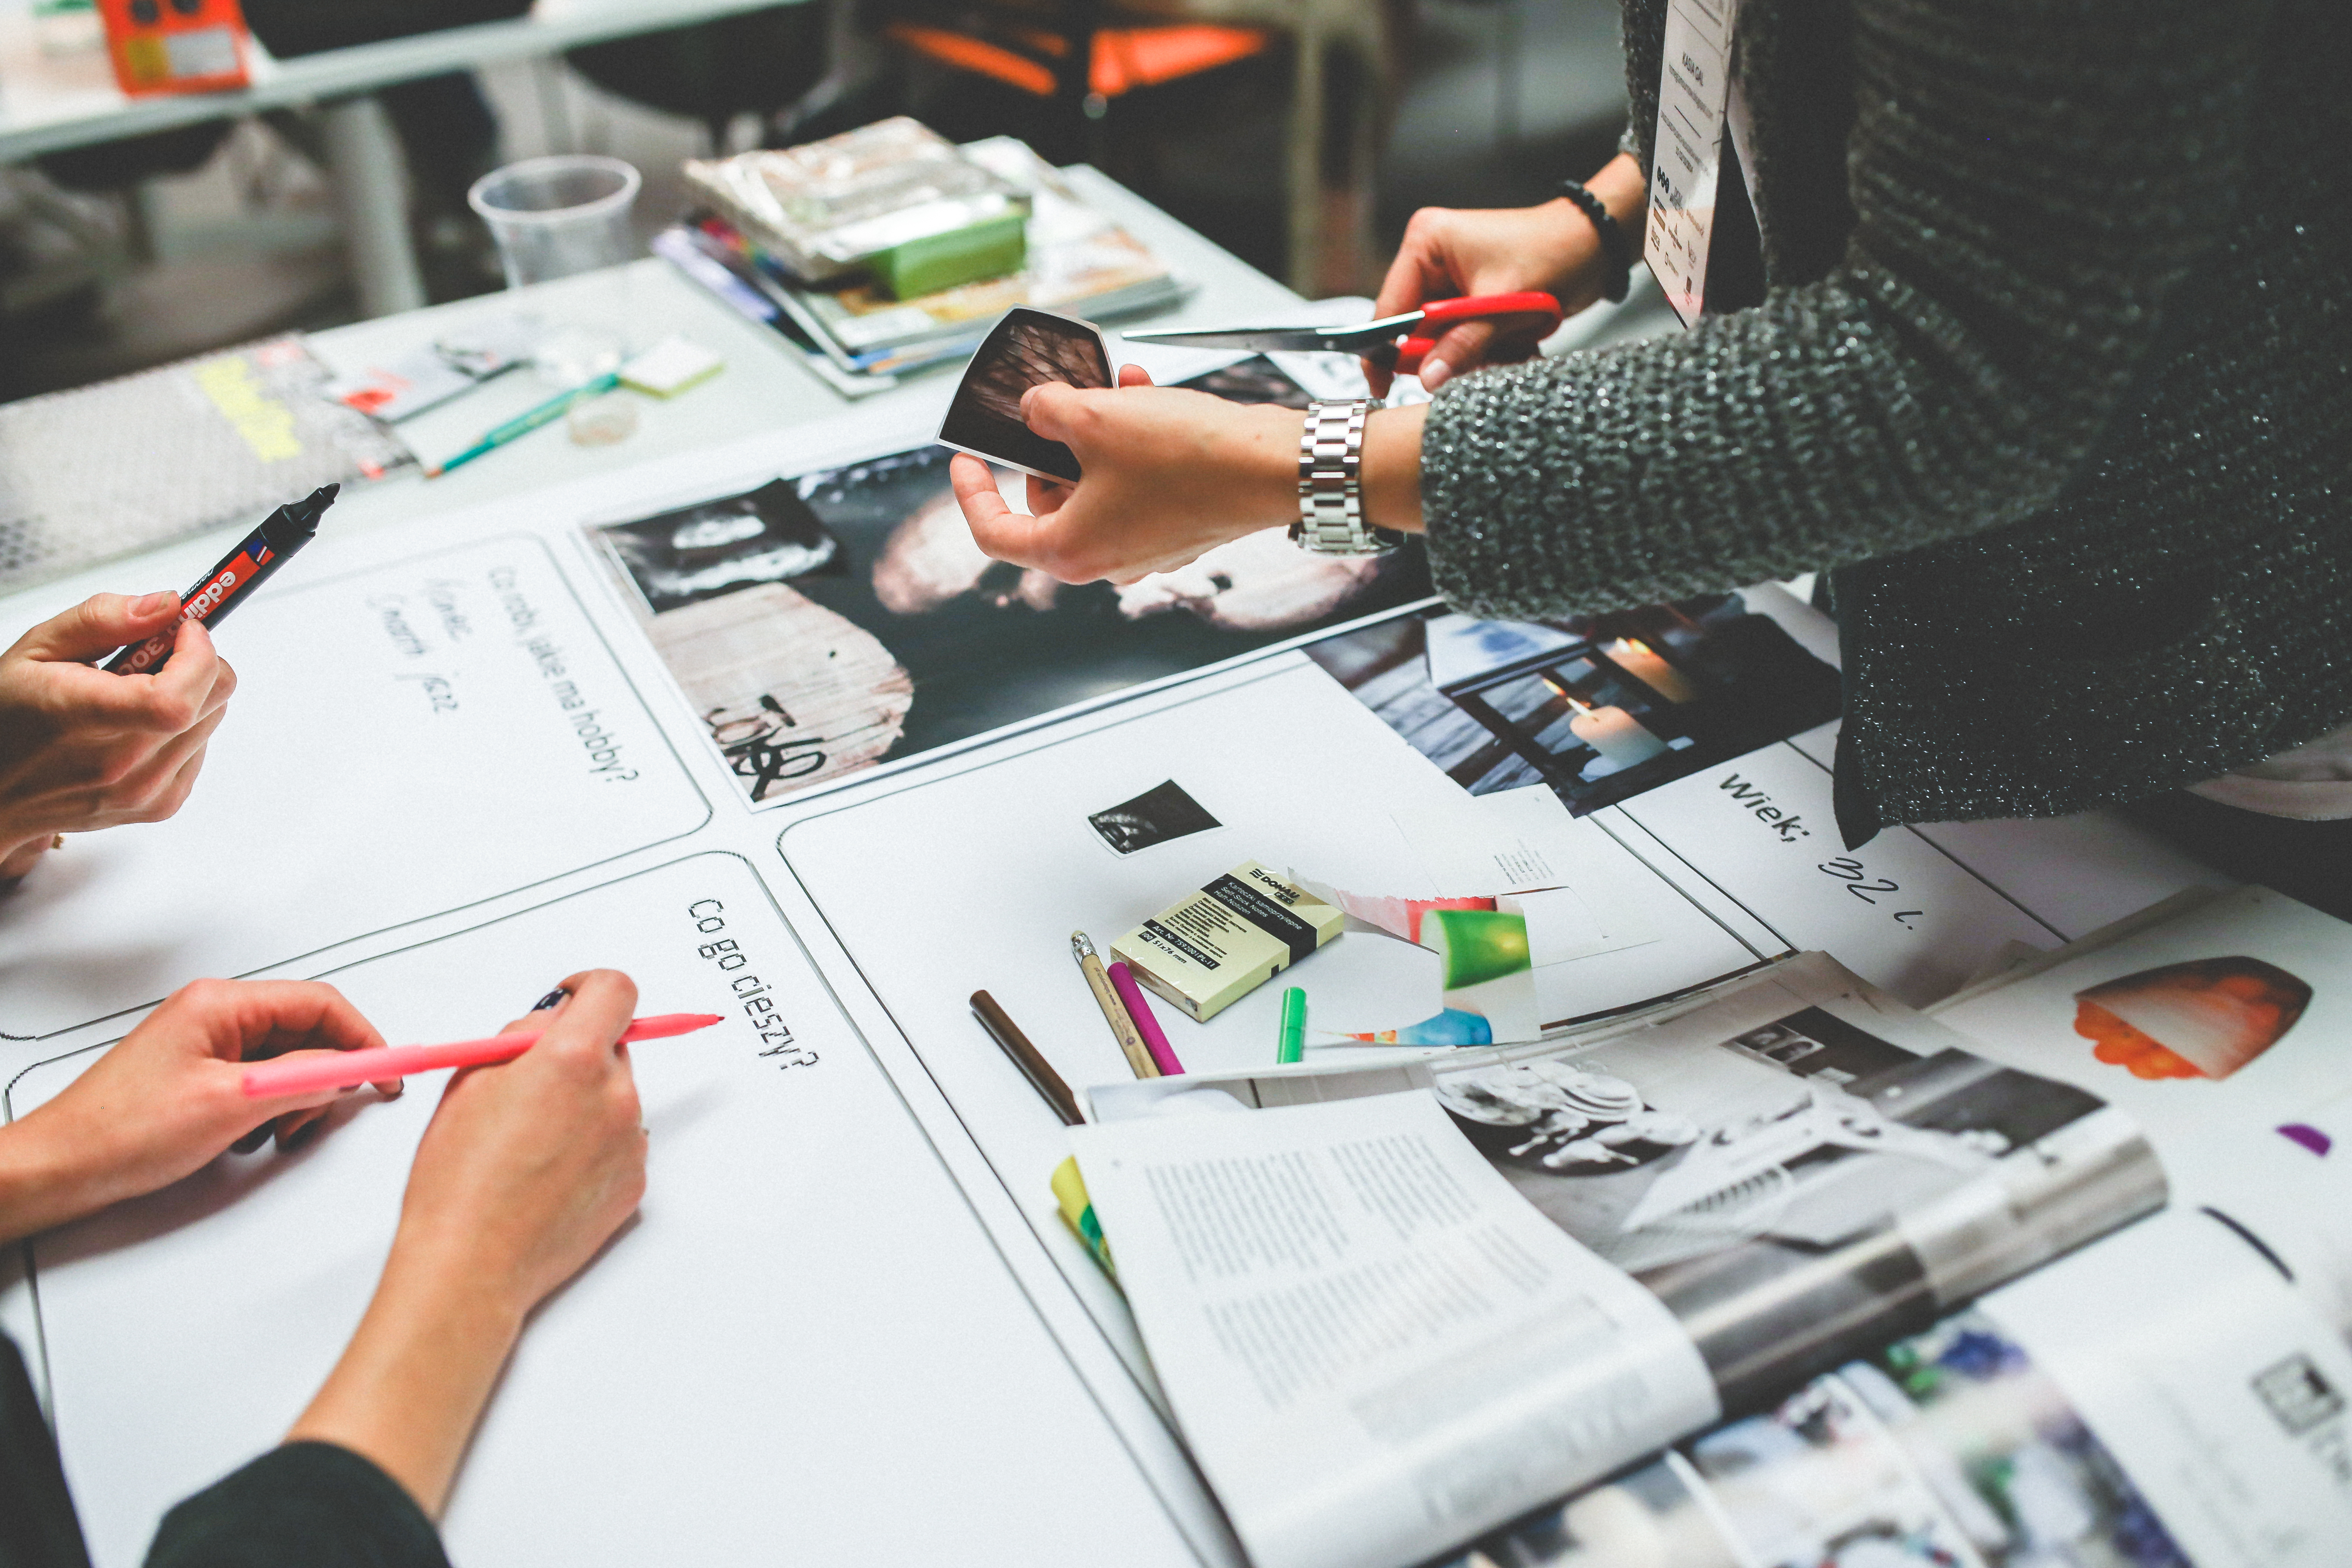 How to Pitch Graphic Design Ideas (Even the Bad Ones)